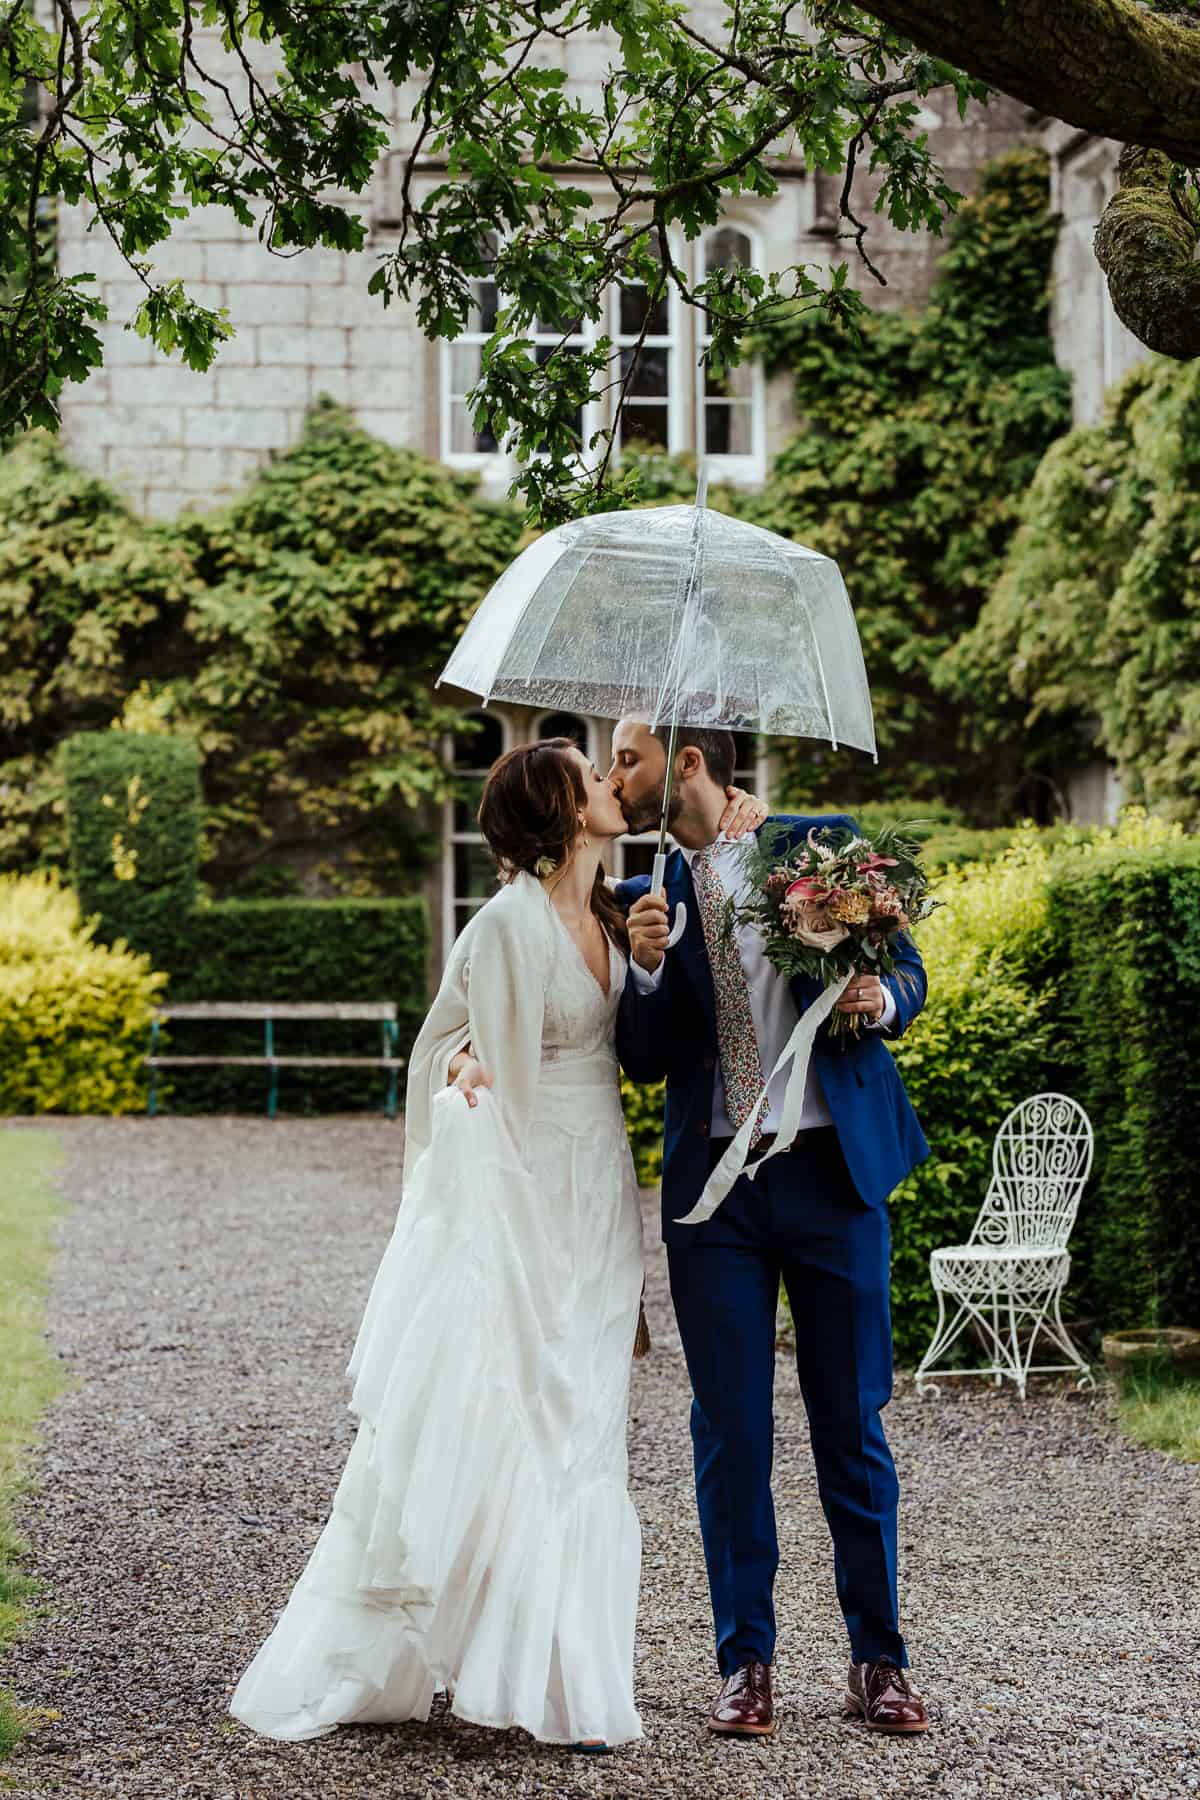 rainy wedding day at lisnavagh house